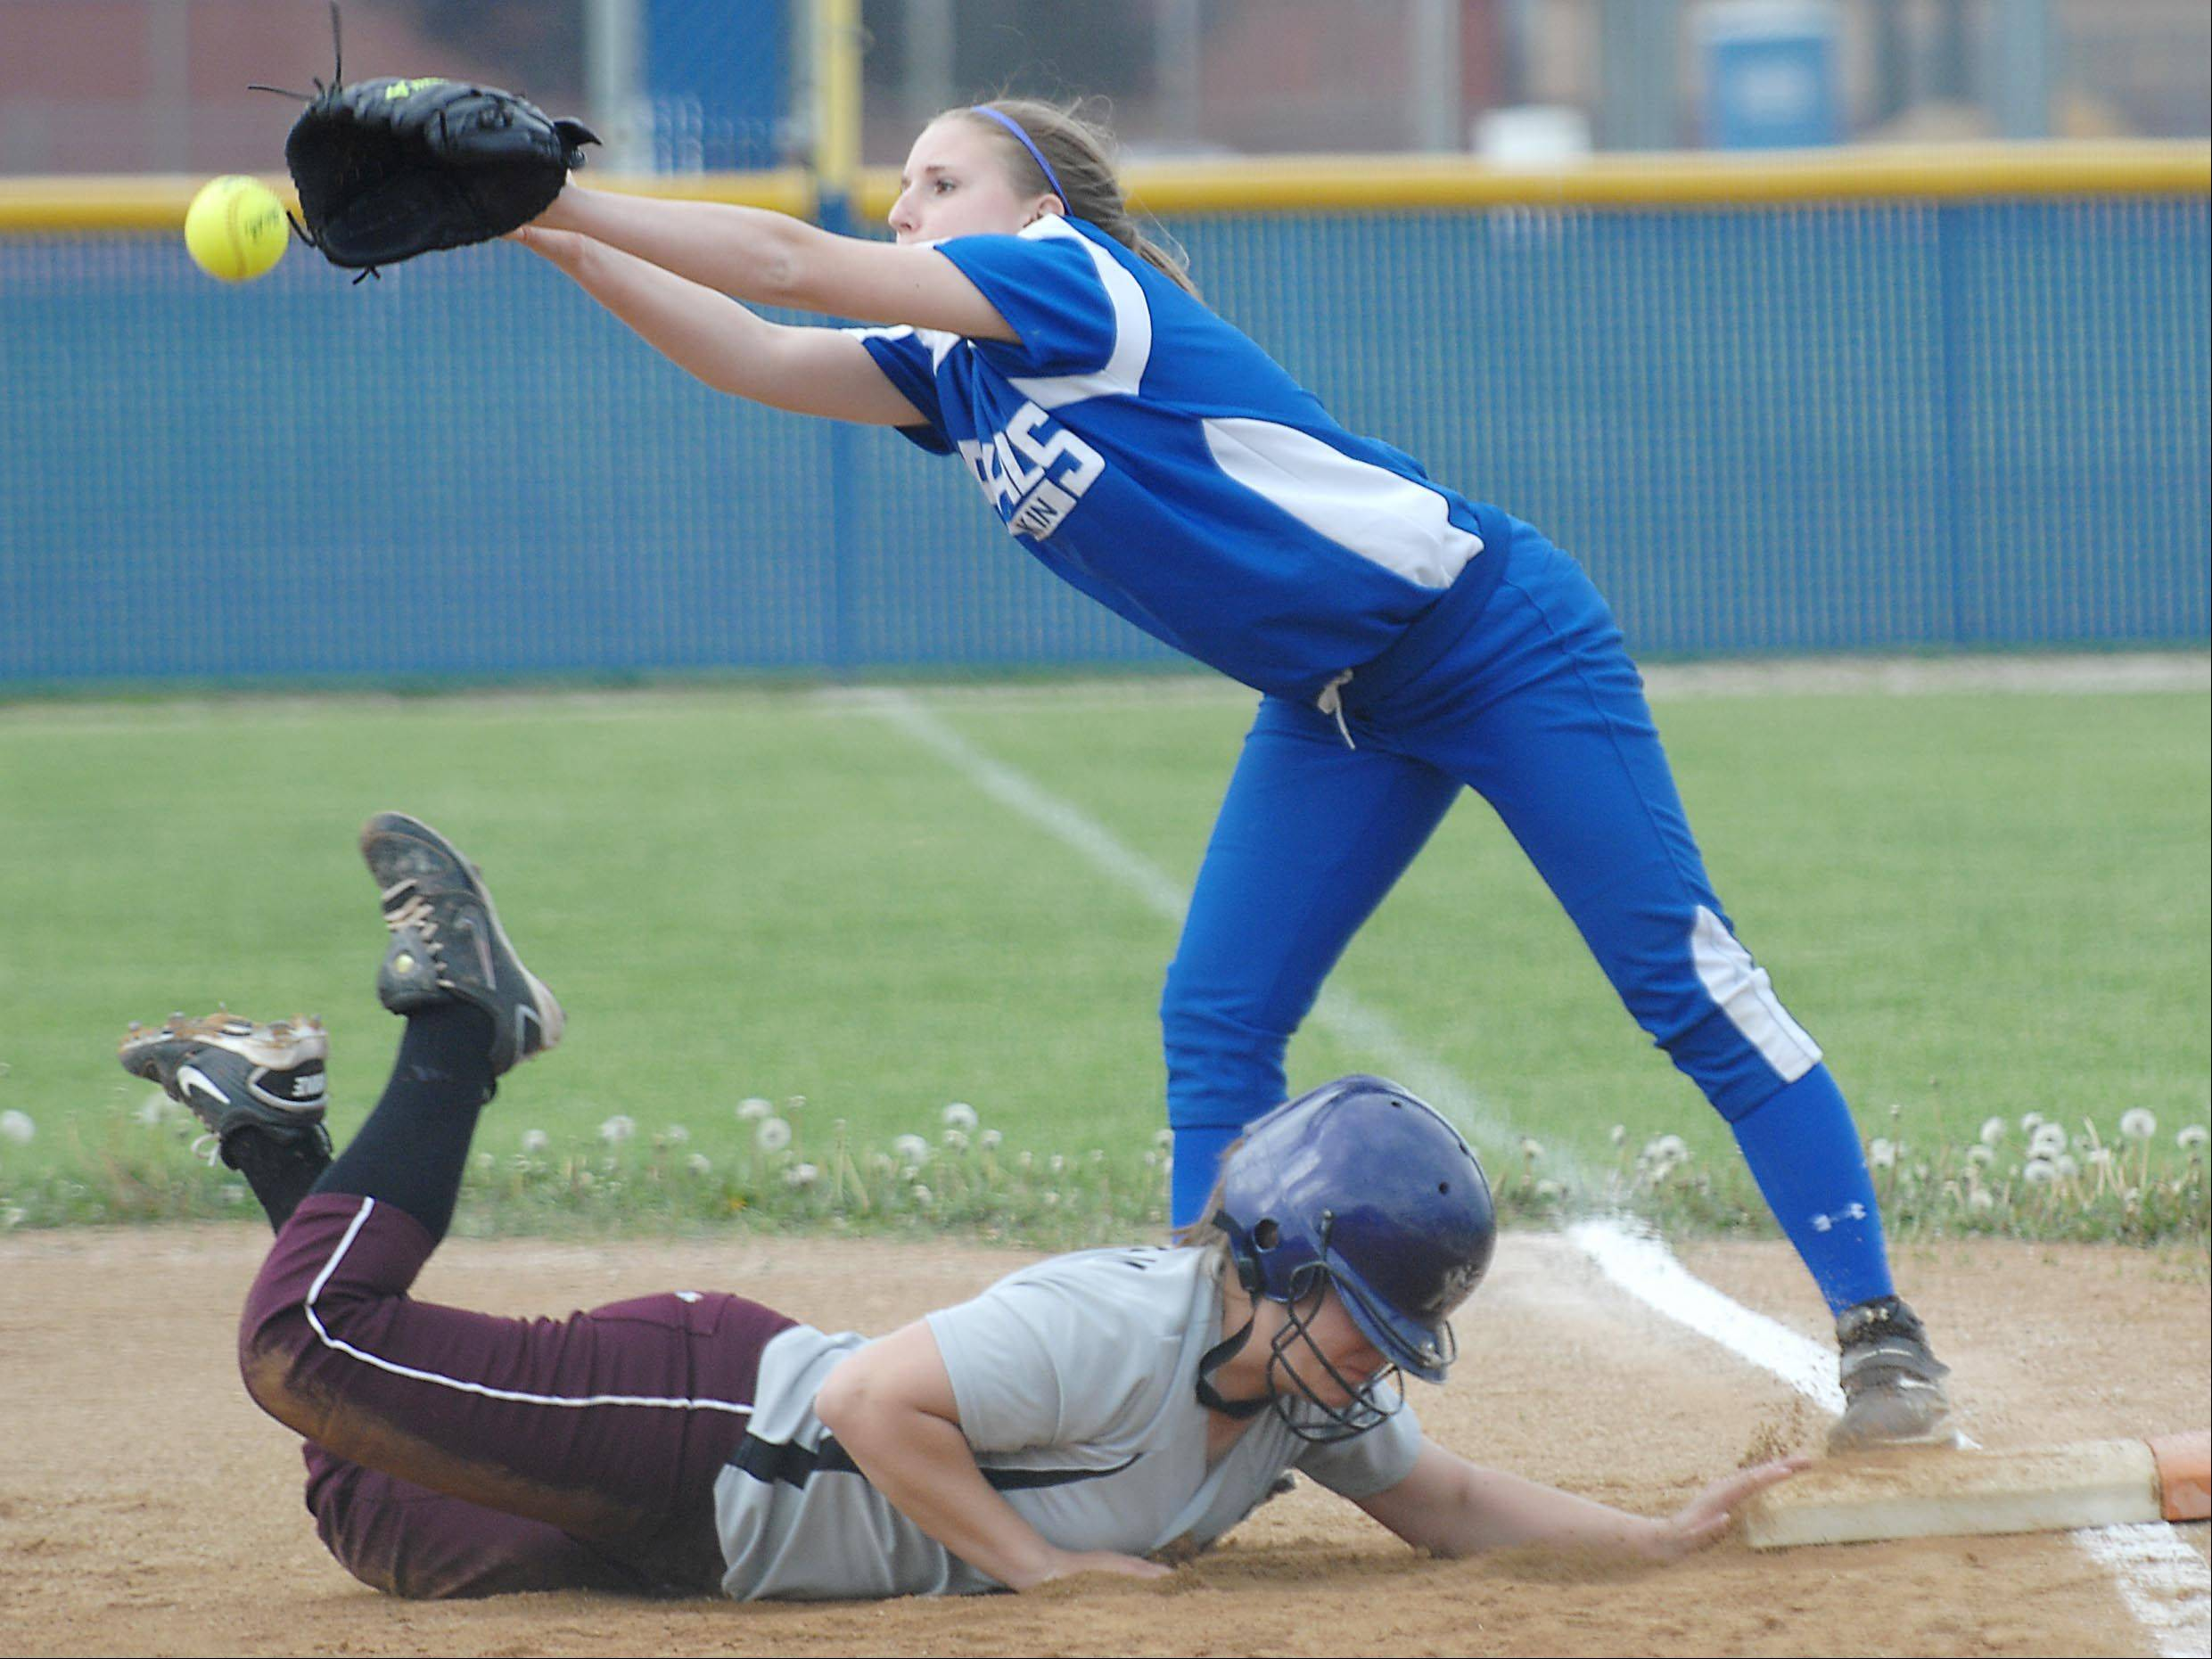 Elgin's Anna Eckholm gets safely back to first base as Larkin's Rebekah Harrington covers the bag Wednesday.